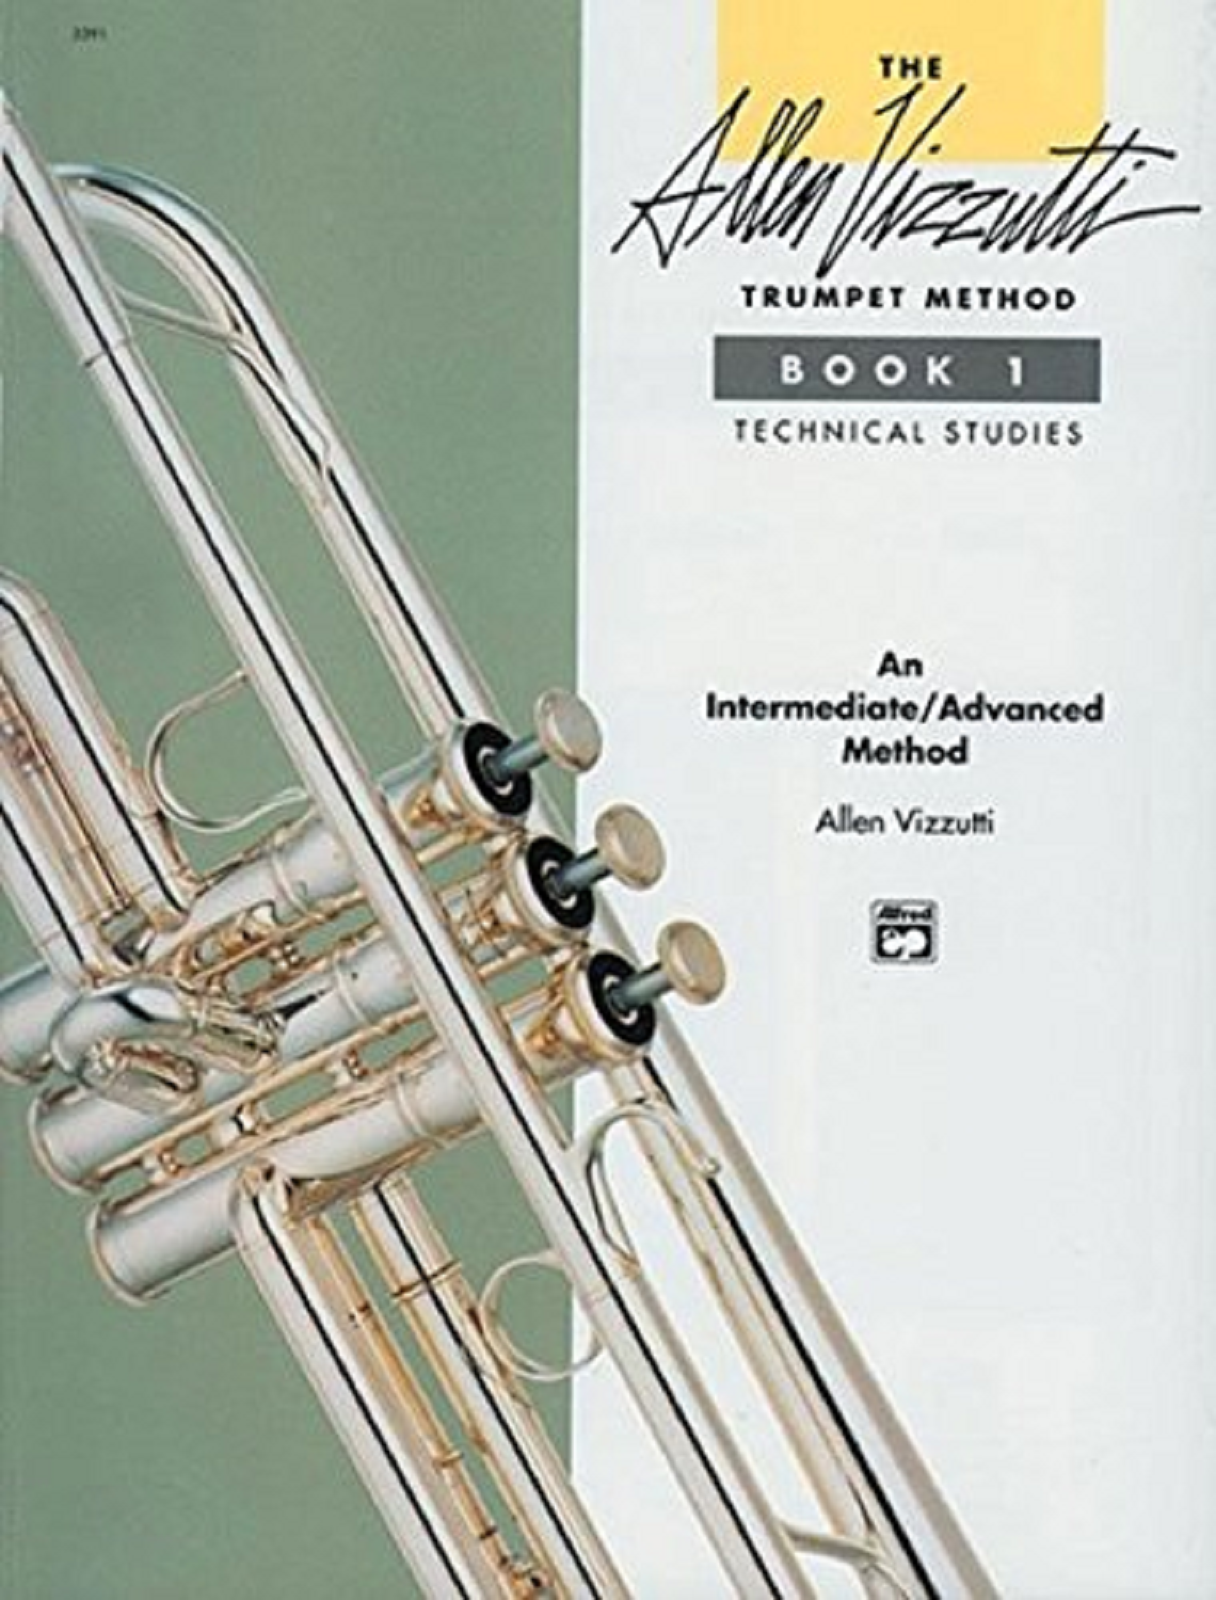 Trumpet Method Book 1 Technical Studies Intermediate Advanced Book Vizzutti S167